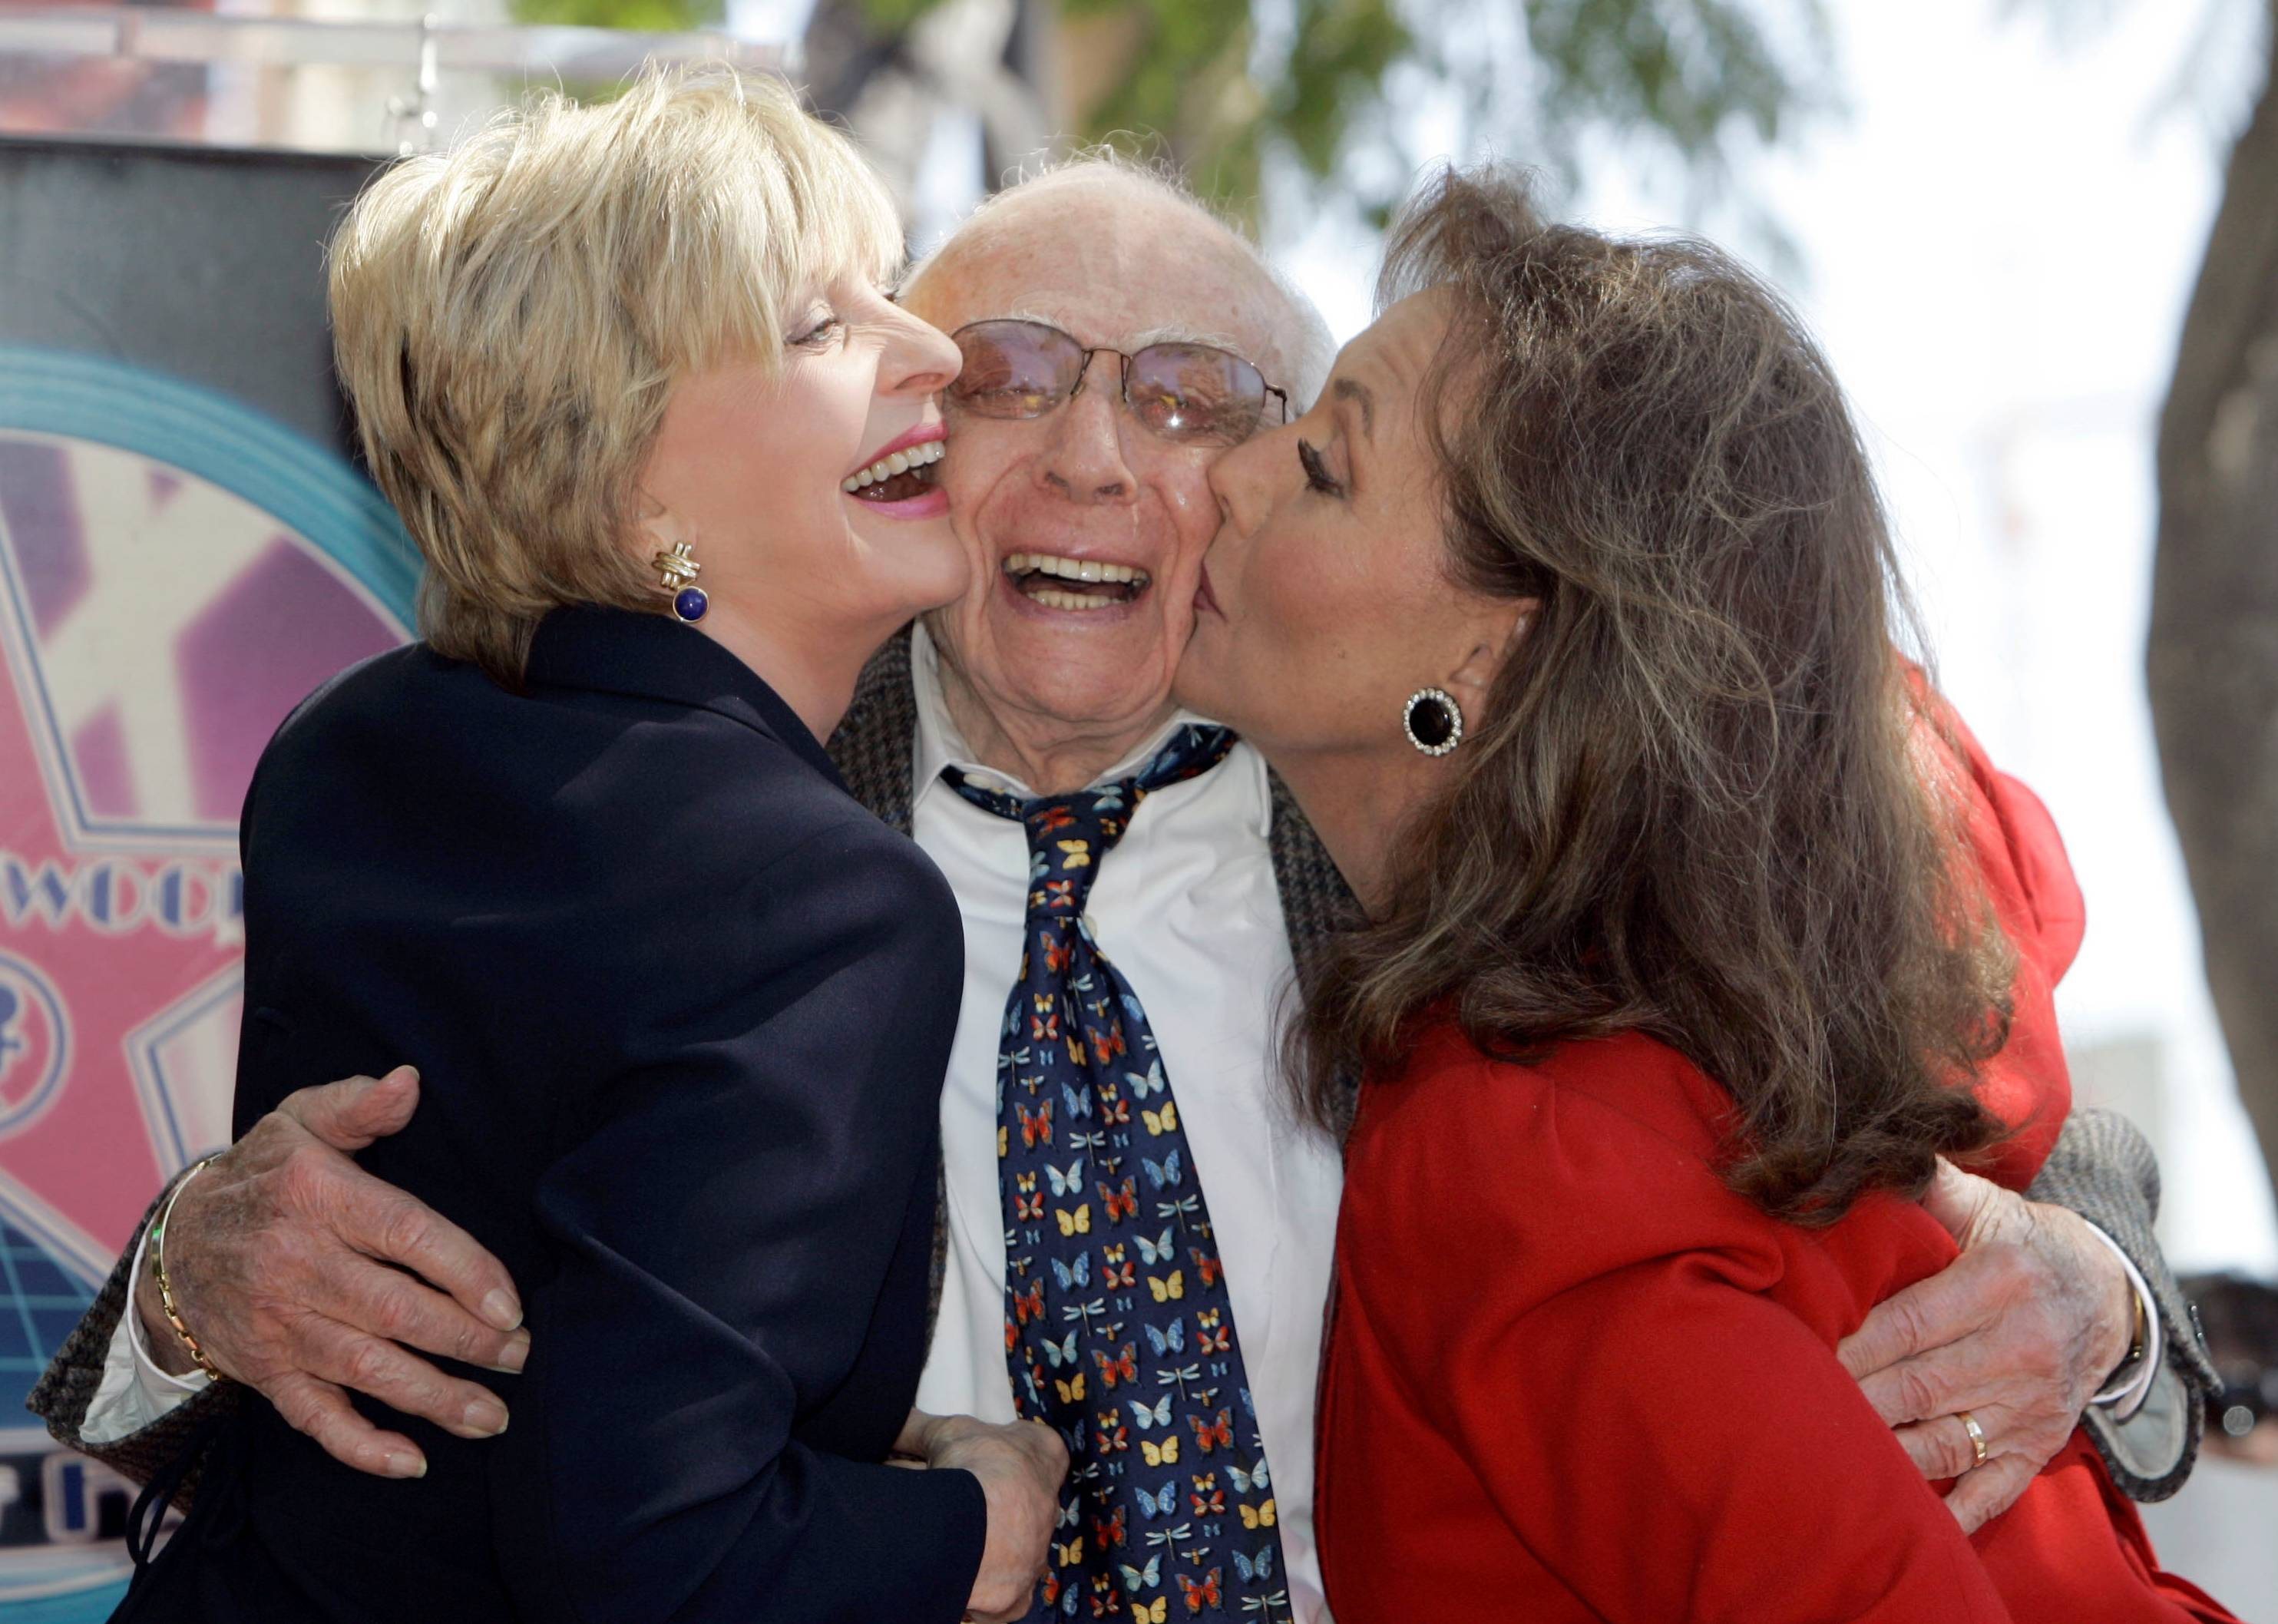 Writer/producer Sherwood Schwartz received a kiss from actresses Florence Henderson, left, and Dawn Wells during a ceremony where Schwartz was honored with a star on the Hollywood Walk of Fame in 2008. Schwartz died Tuesday at the age of 94.